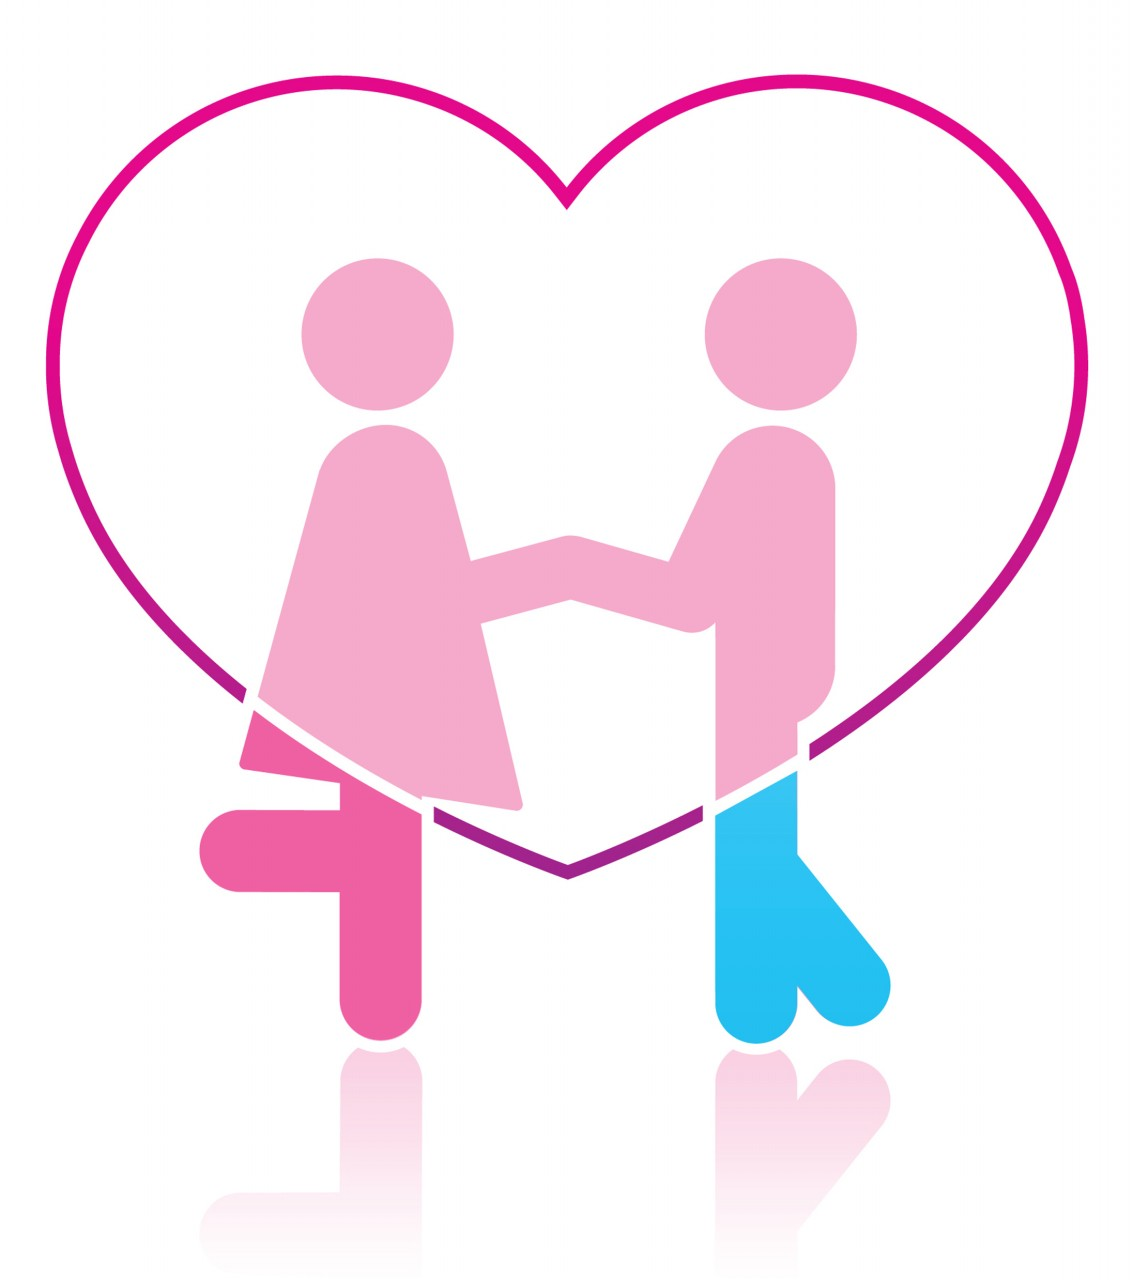 In love clipart clipart picture free Love Clipart | Clipart Panda - Free Clipart Images picture free